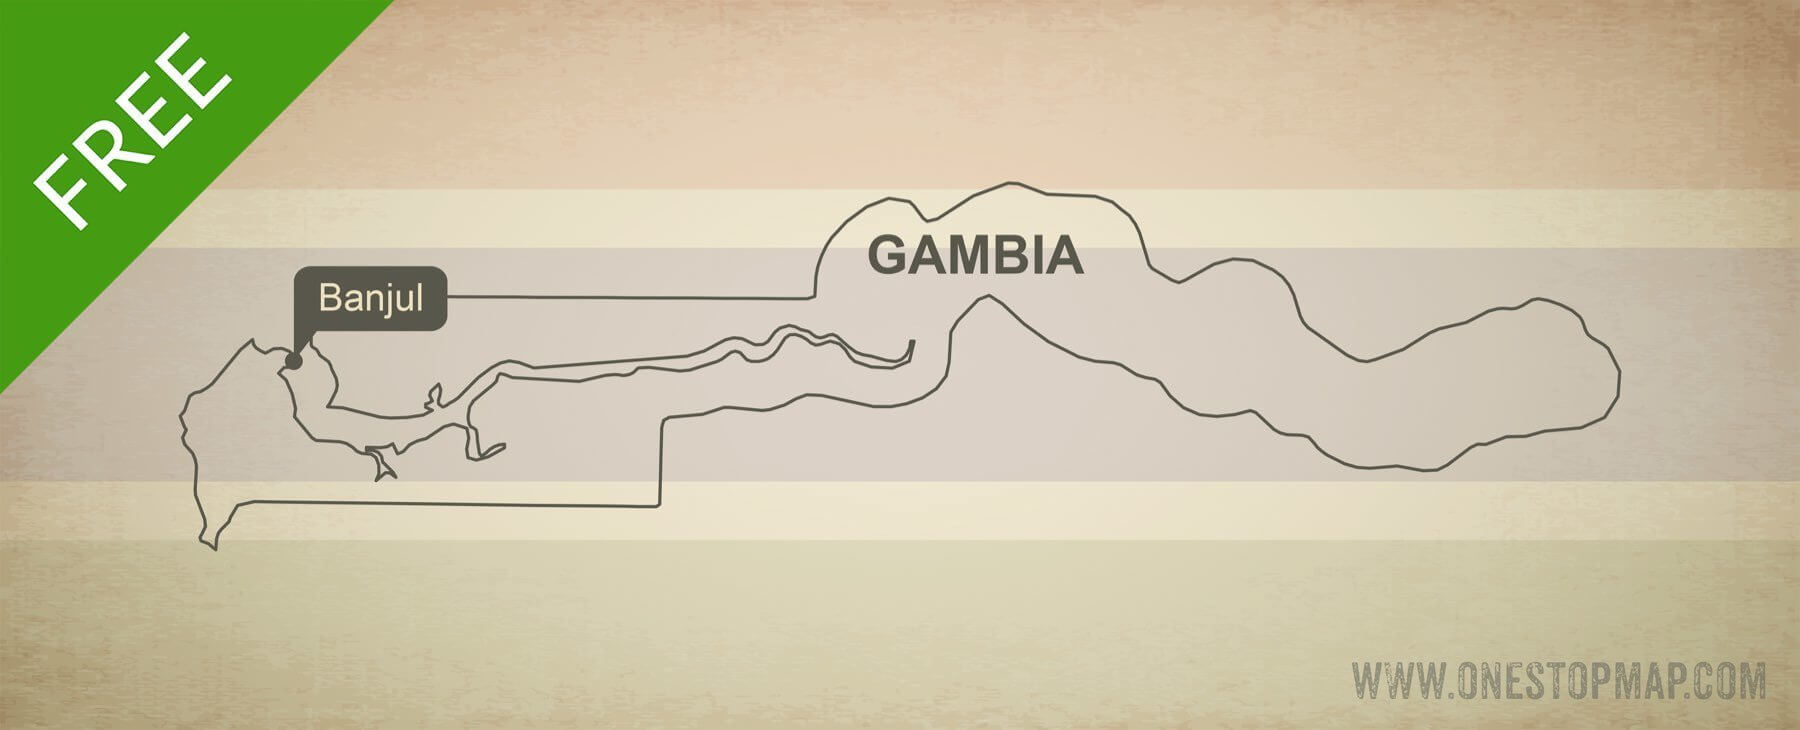 Map of Gambia outline